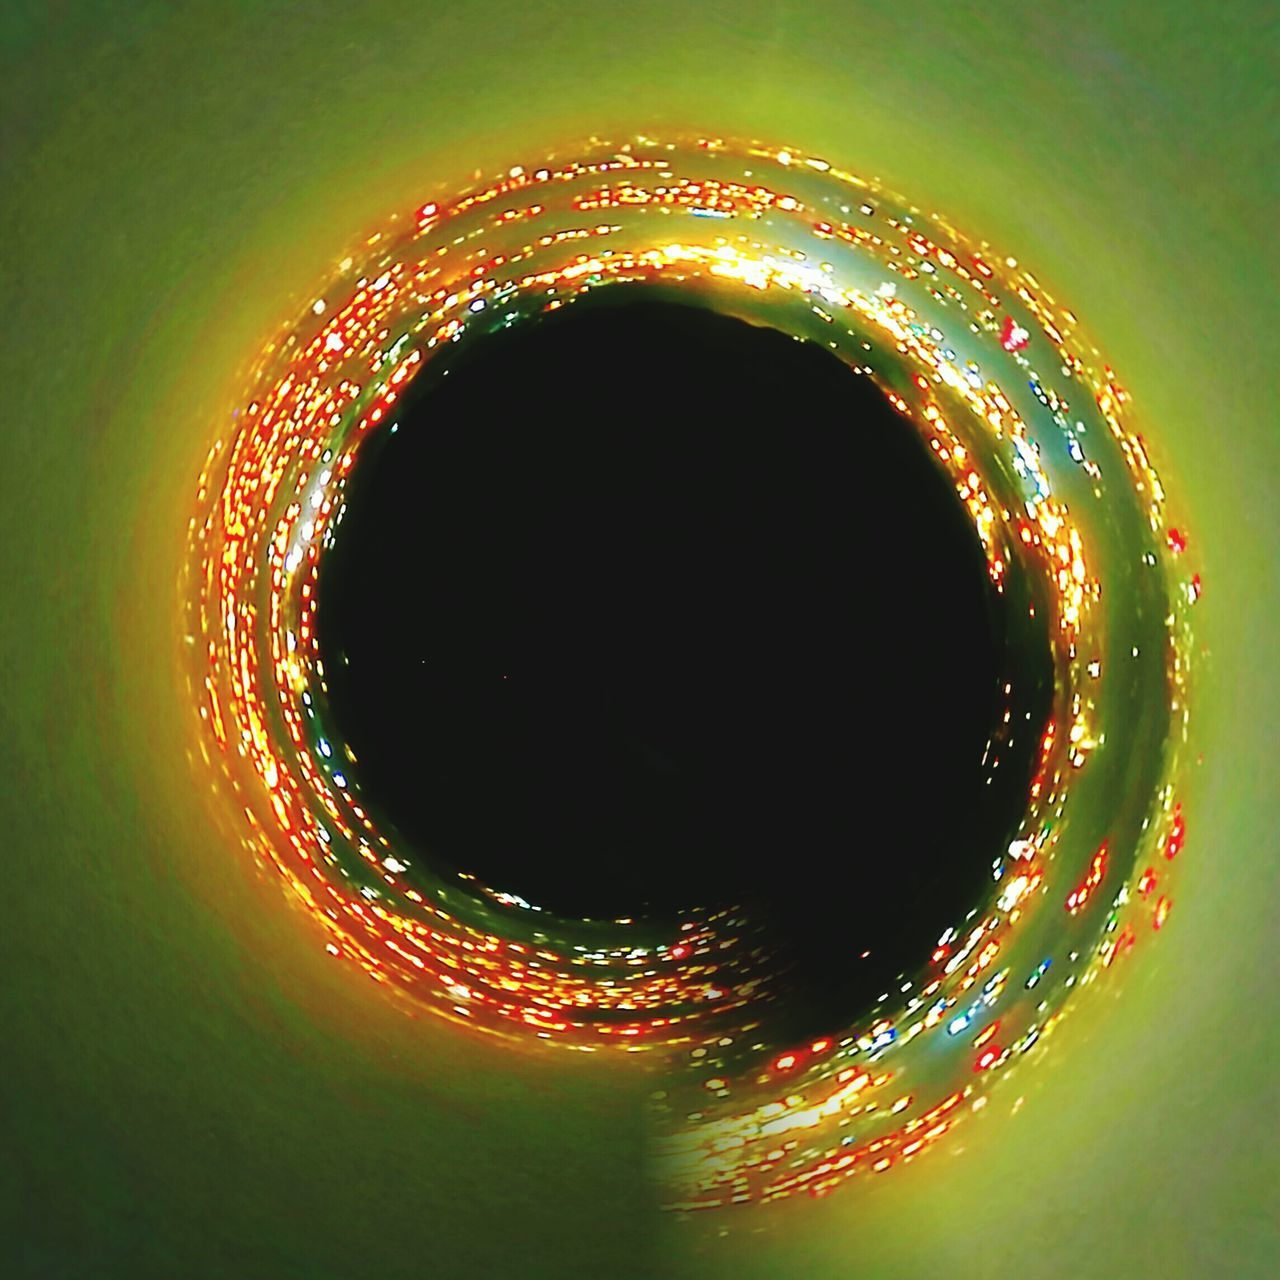 Black Hole Heat - Temperature Circle Vibrant Color Yellow Abstract Defocused Flame Backgrounds Burning Close-up Shiny No People Nature